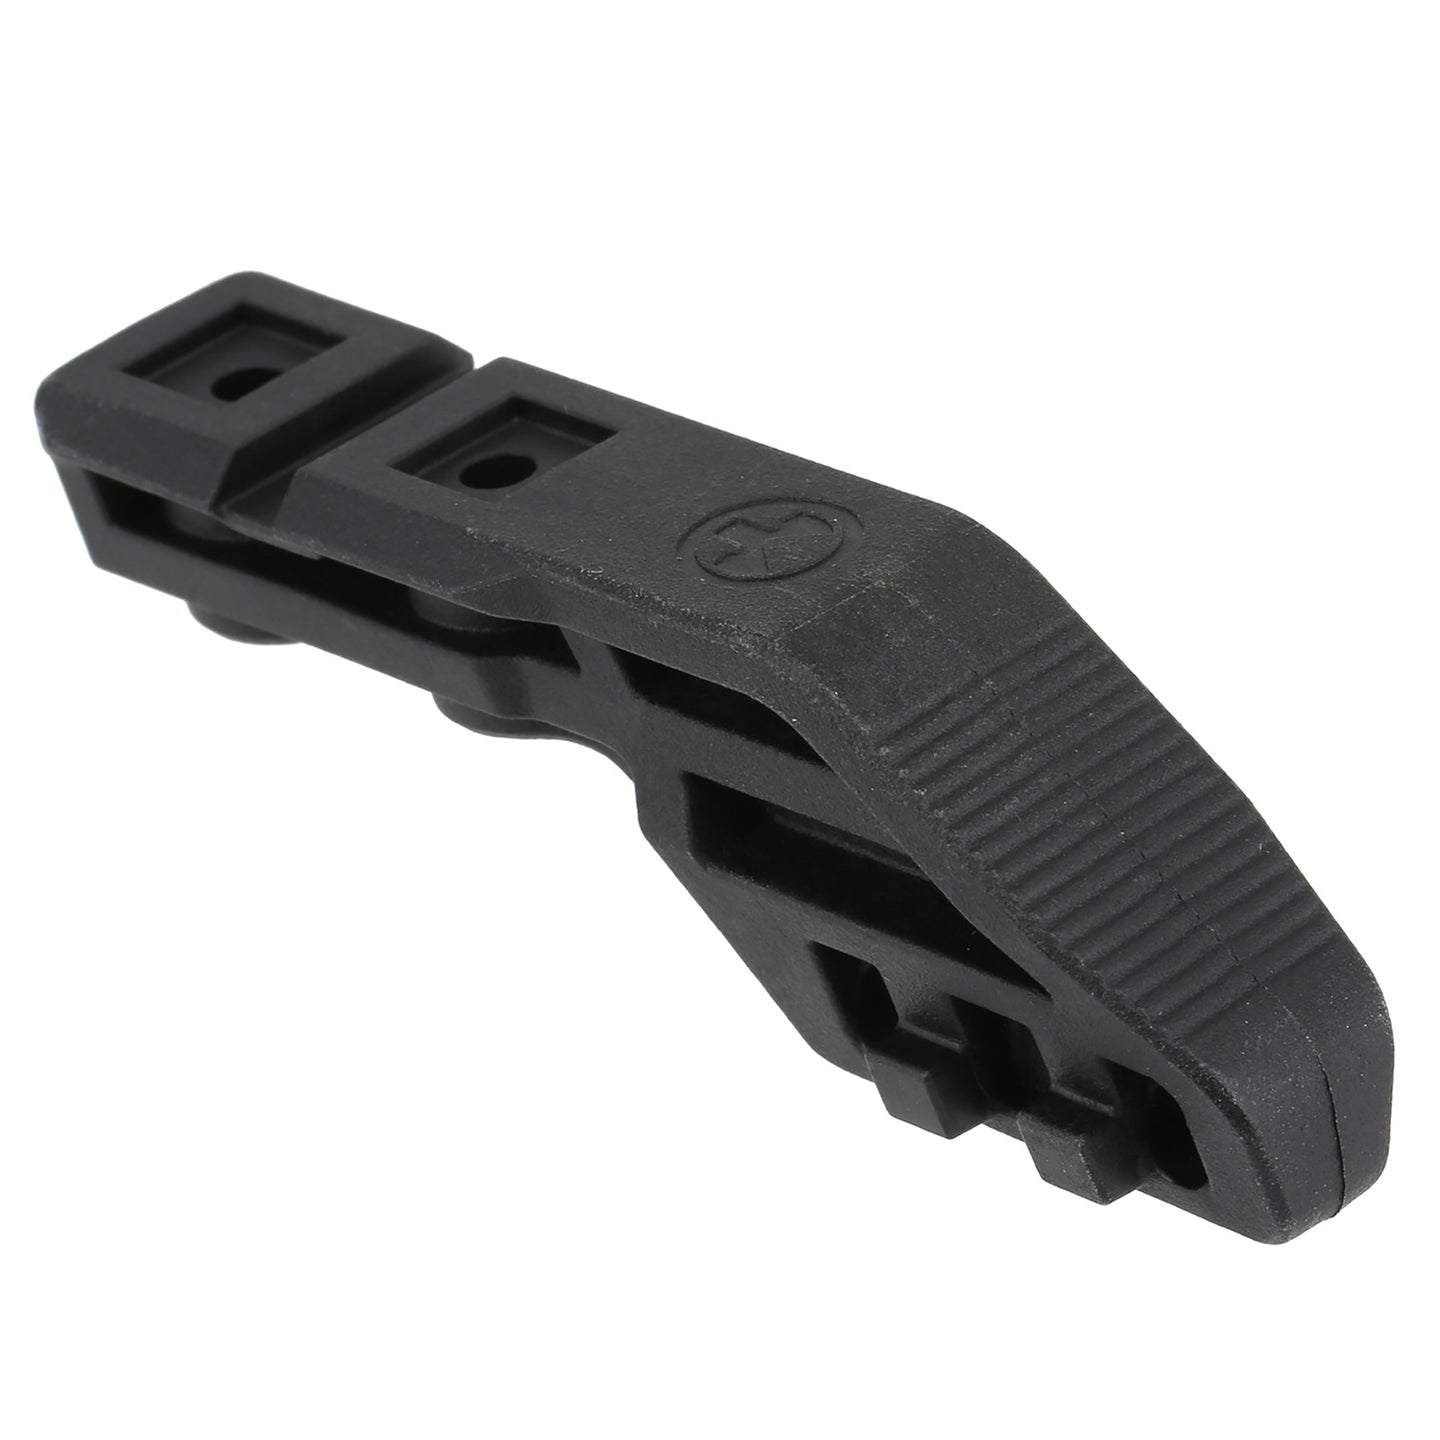 Magpul MOE Scout Mount - Right side, Black